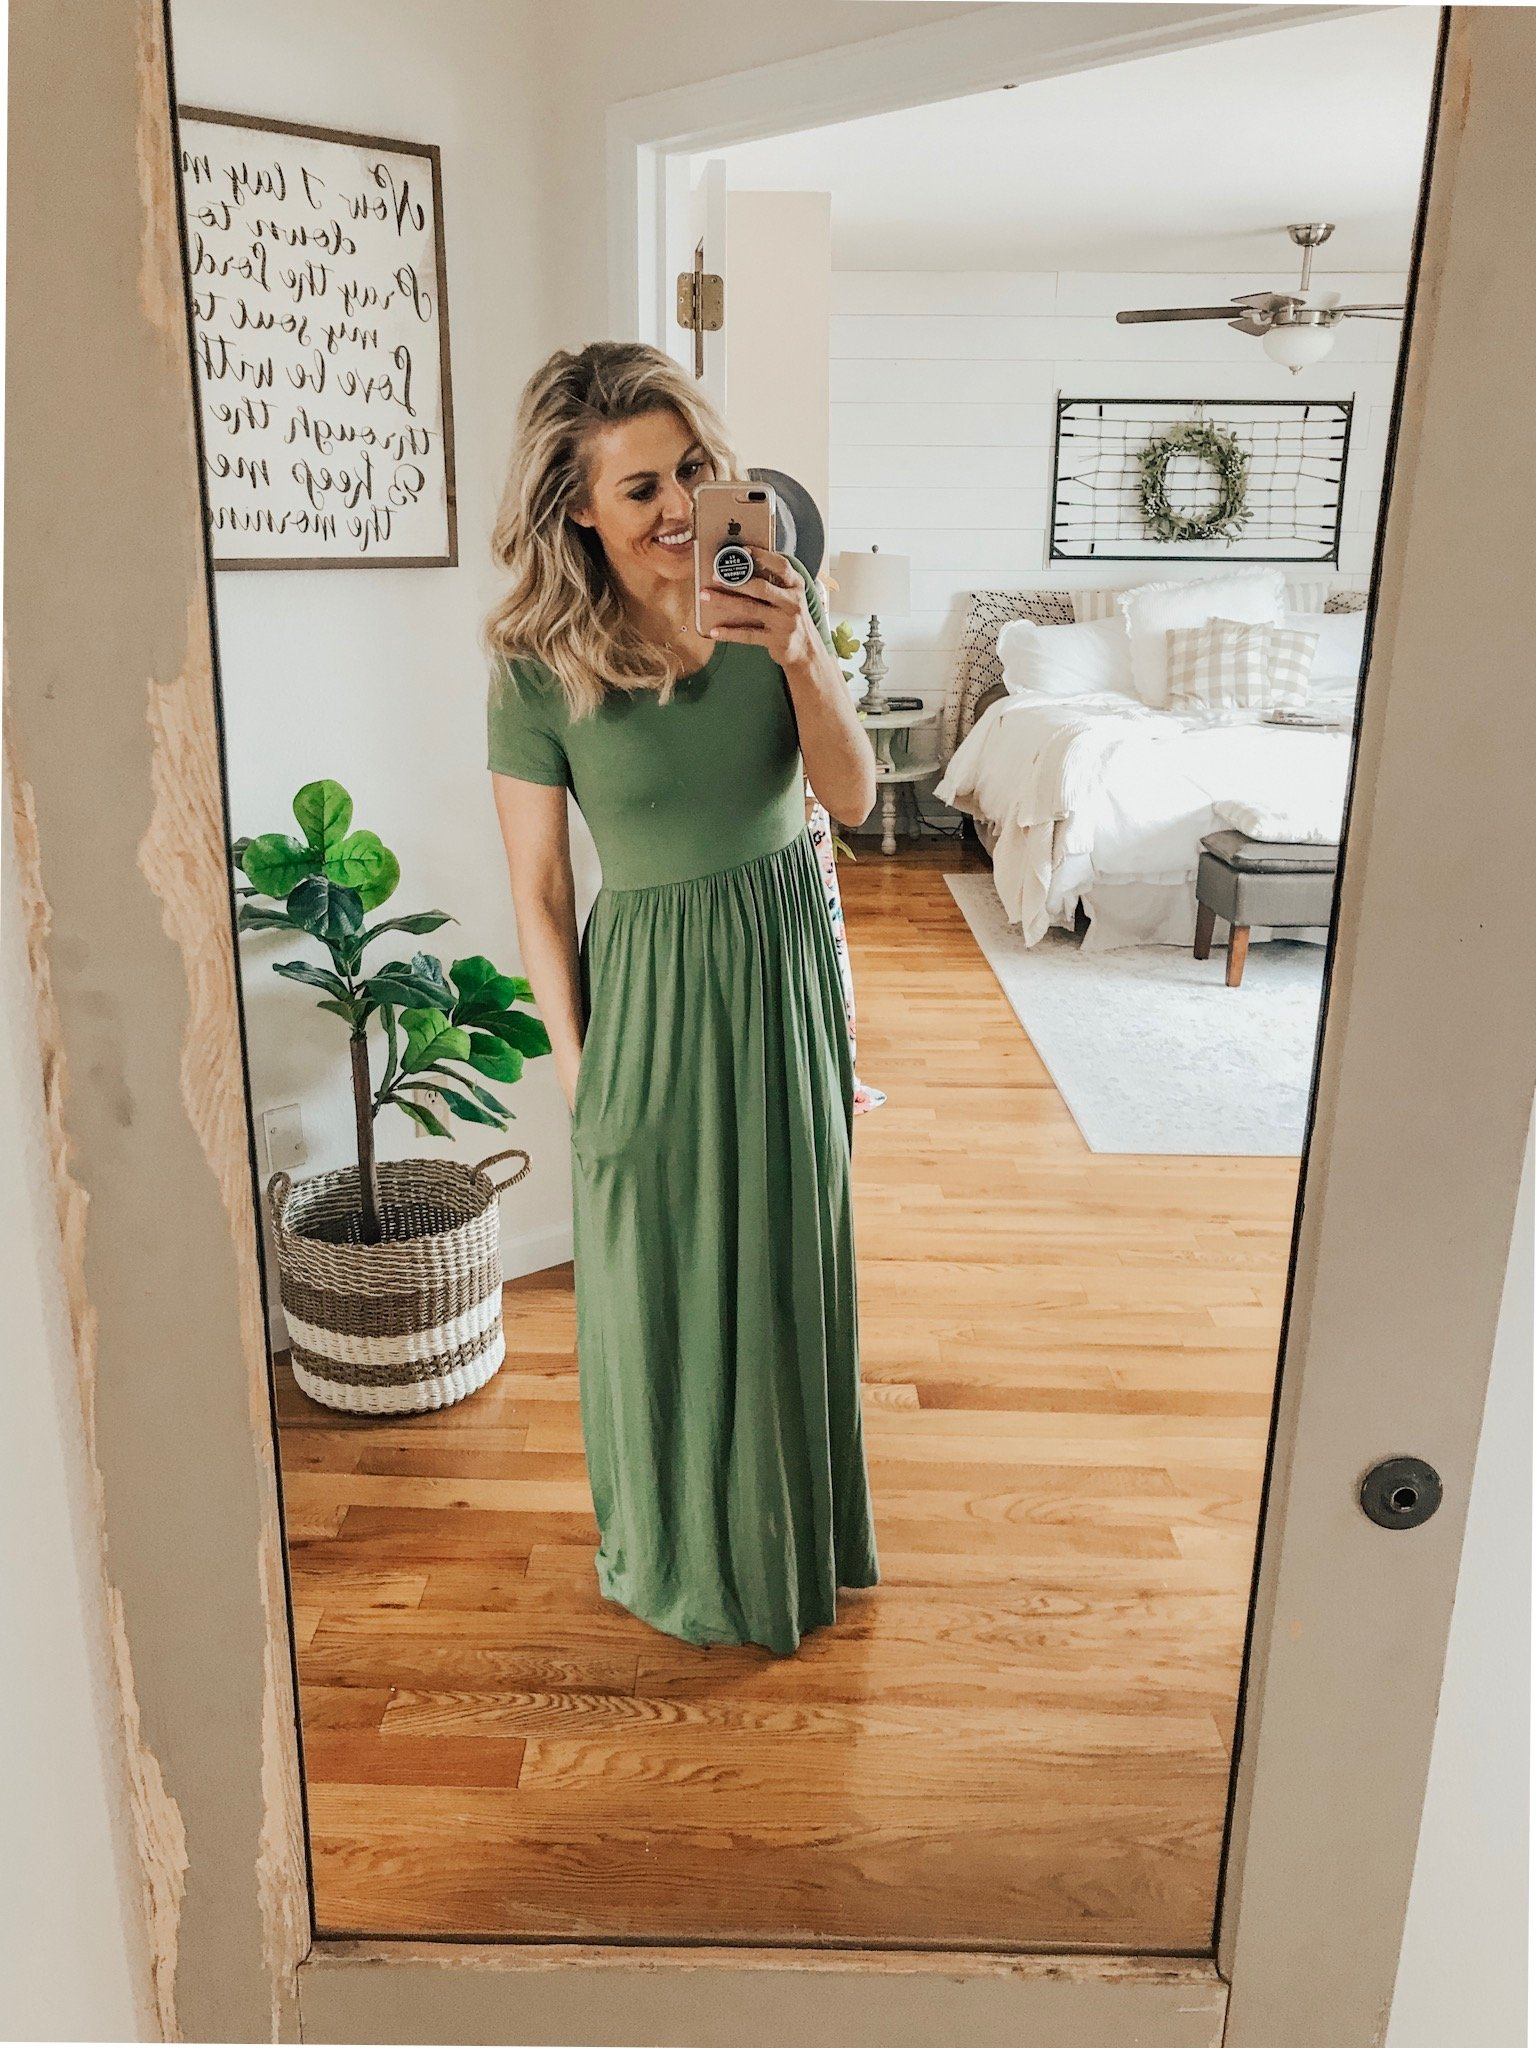 Affordable Maxi Dresses from Amazon. 30+ dresses from Amazon under $40